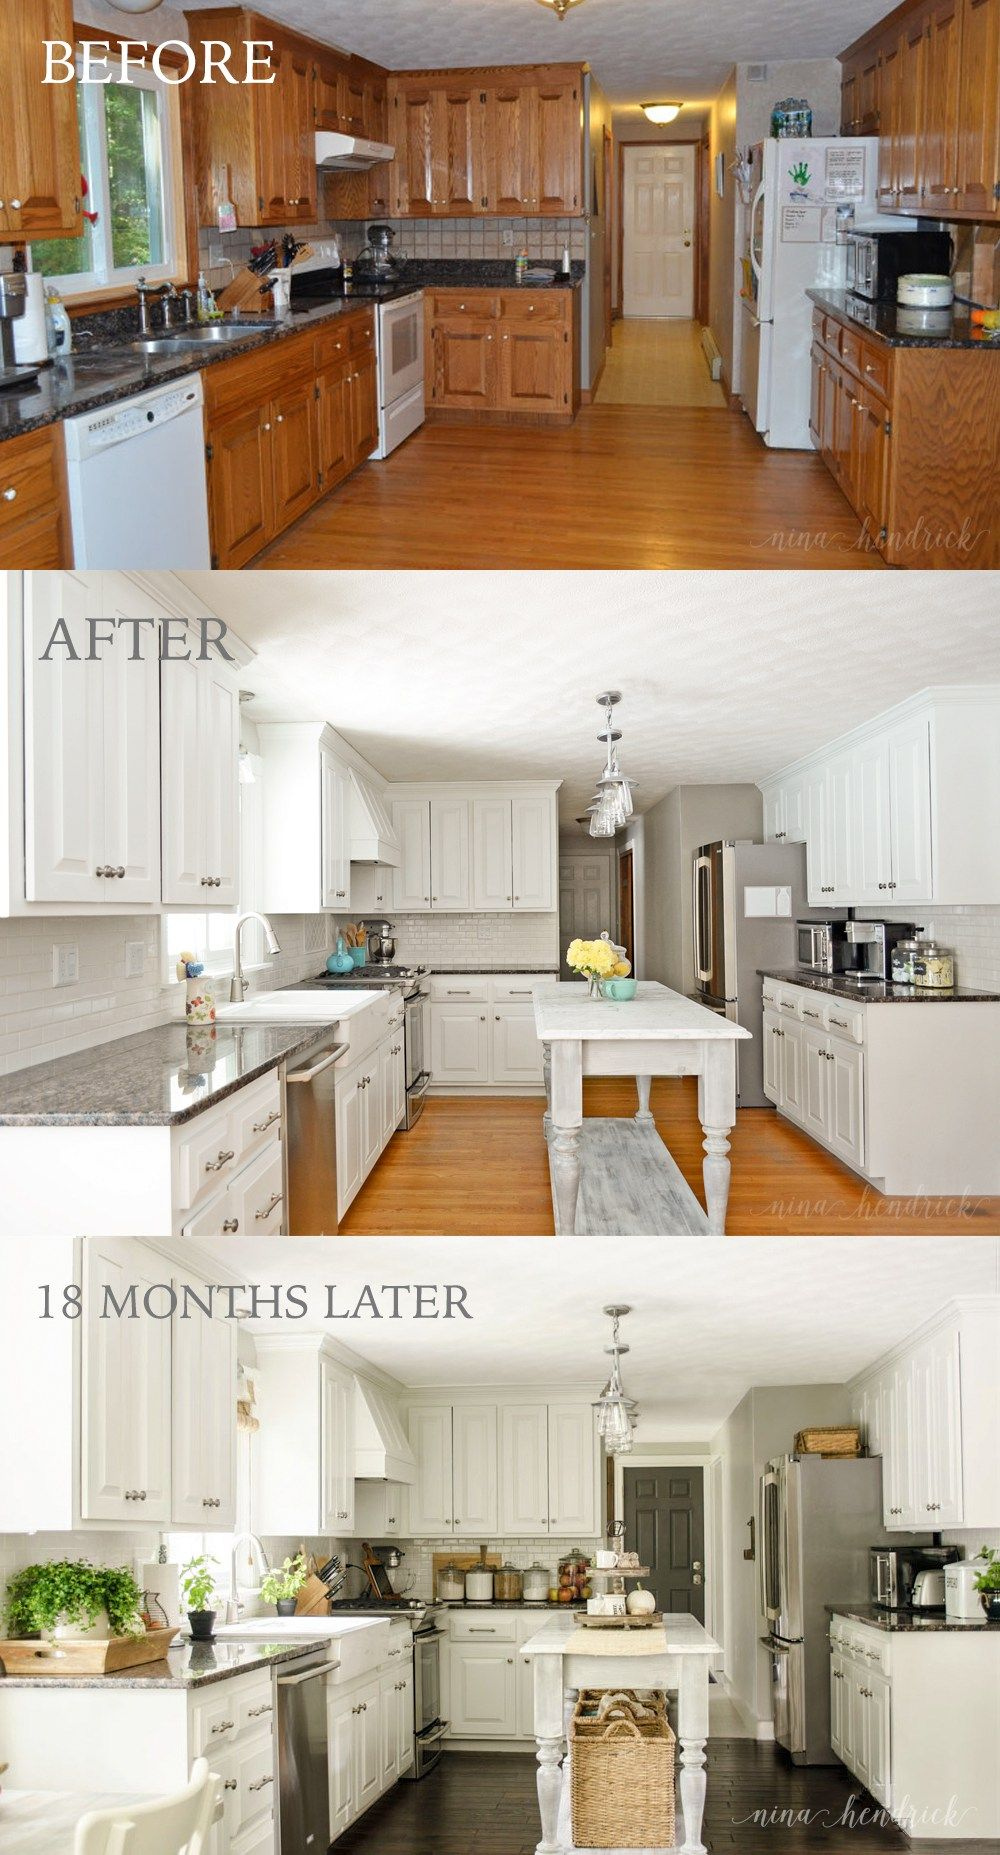 White Painted Kitchen Before After 18 Months Later By Nina Hendrick